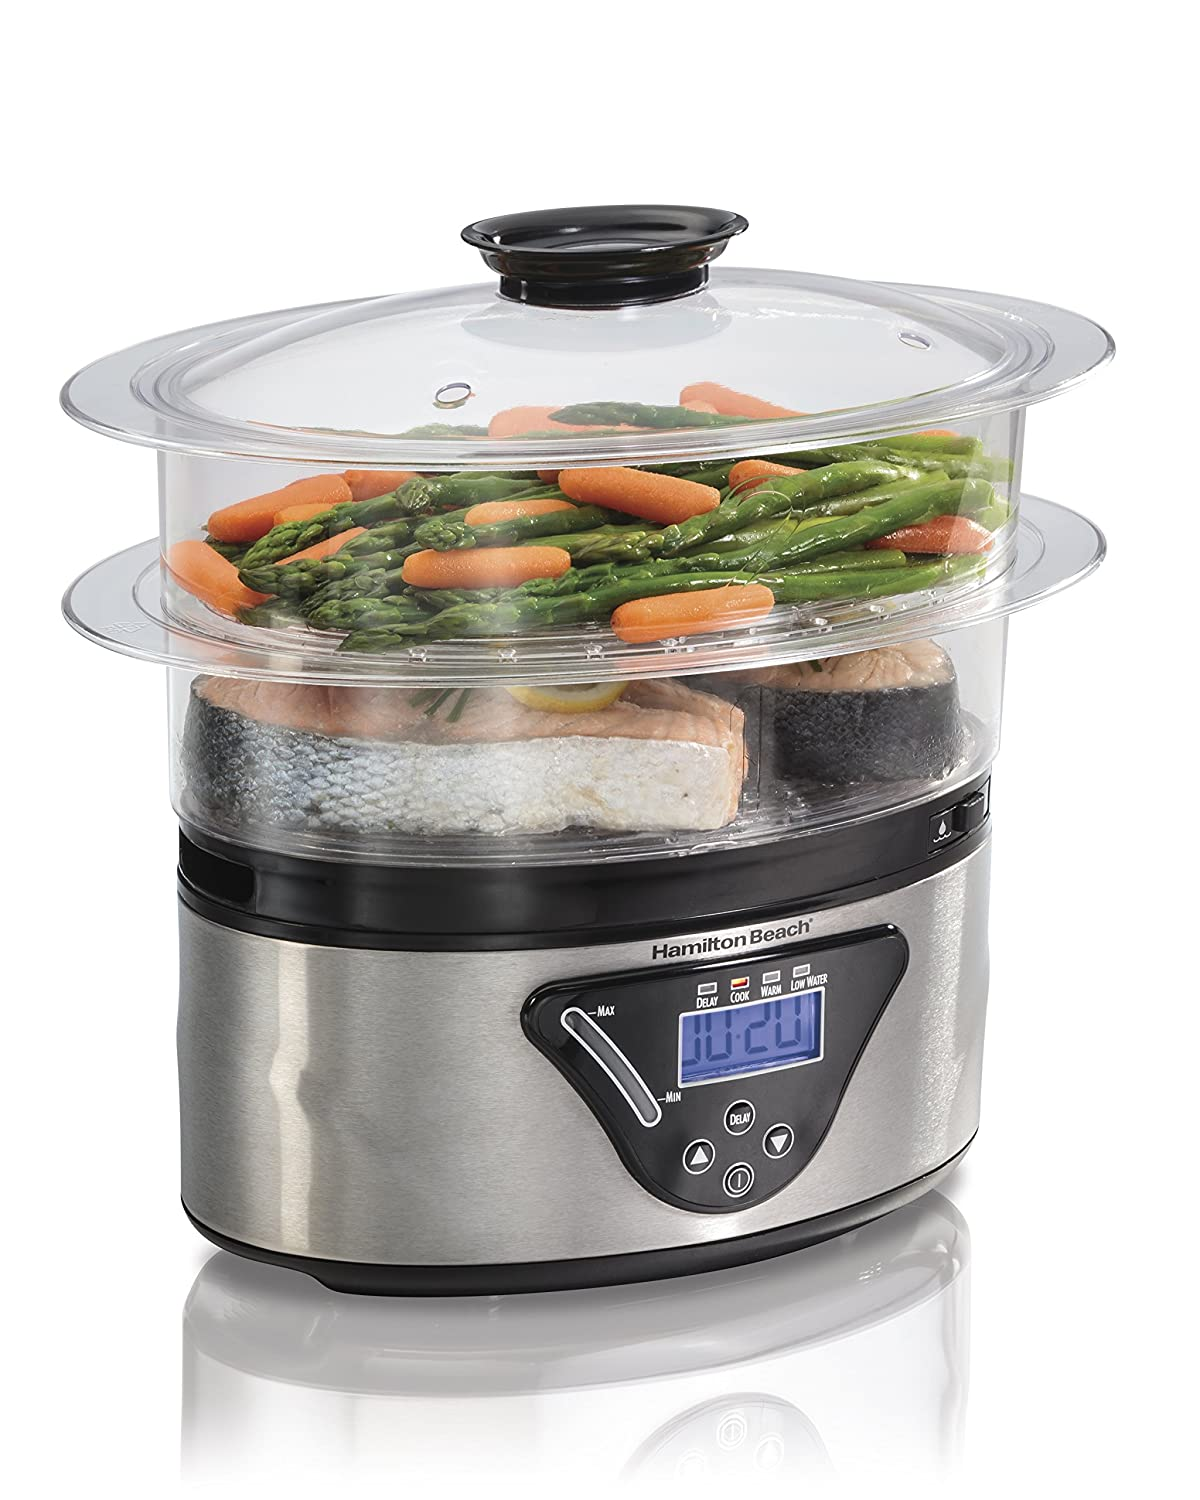 Best Vegetable Steamer Reviews 2019: Top 5+ Recommended 3 #cookymom